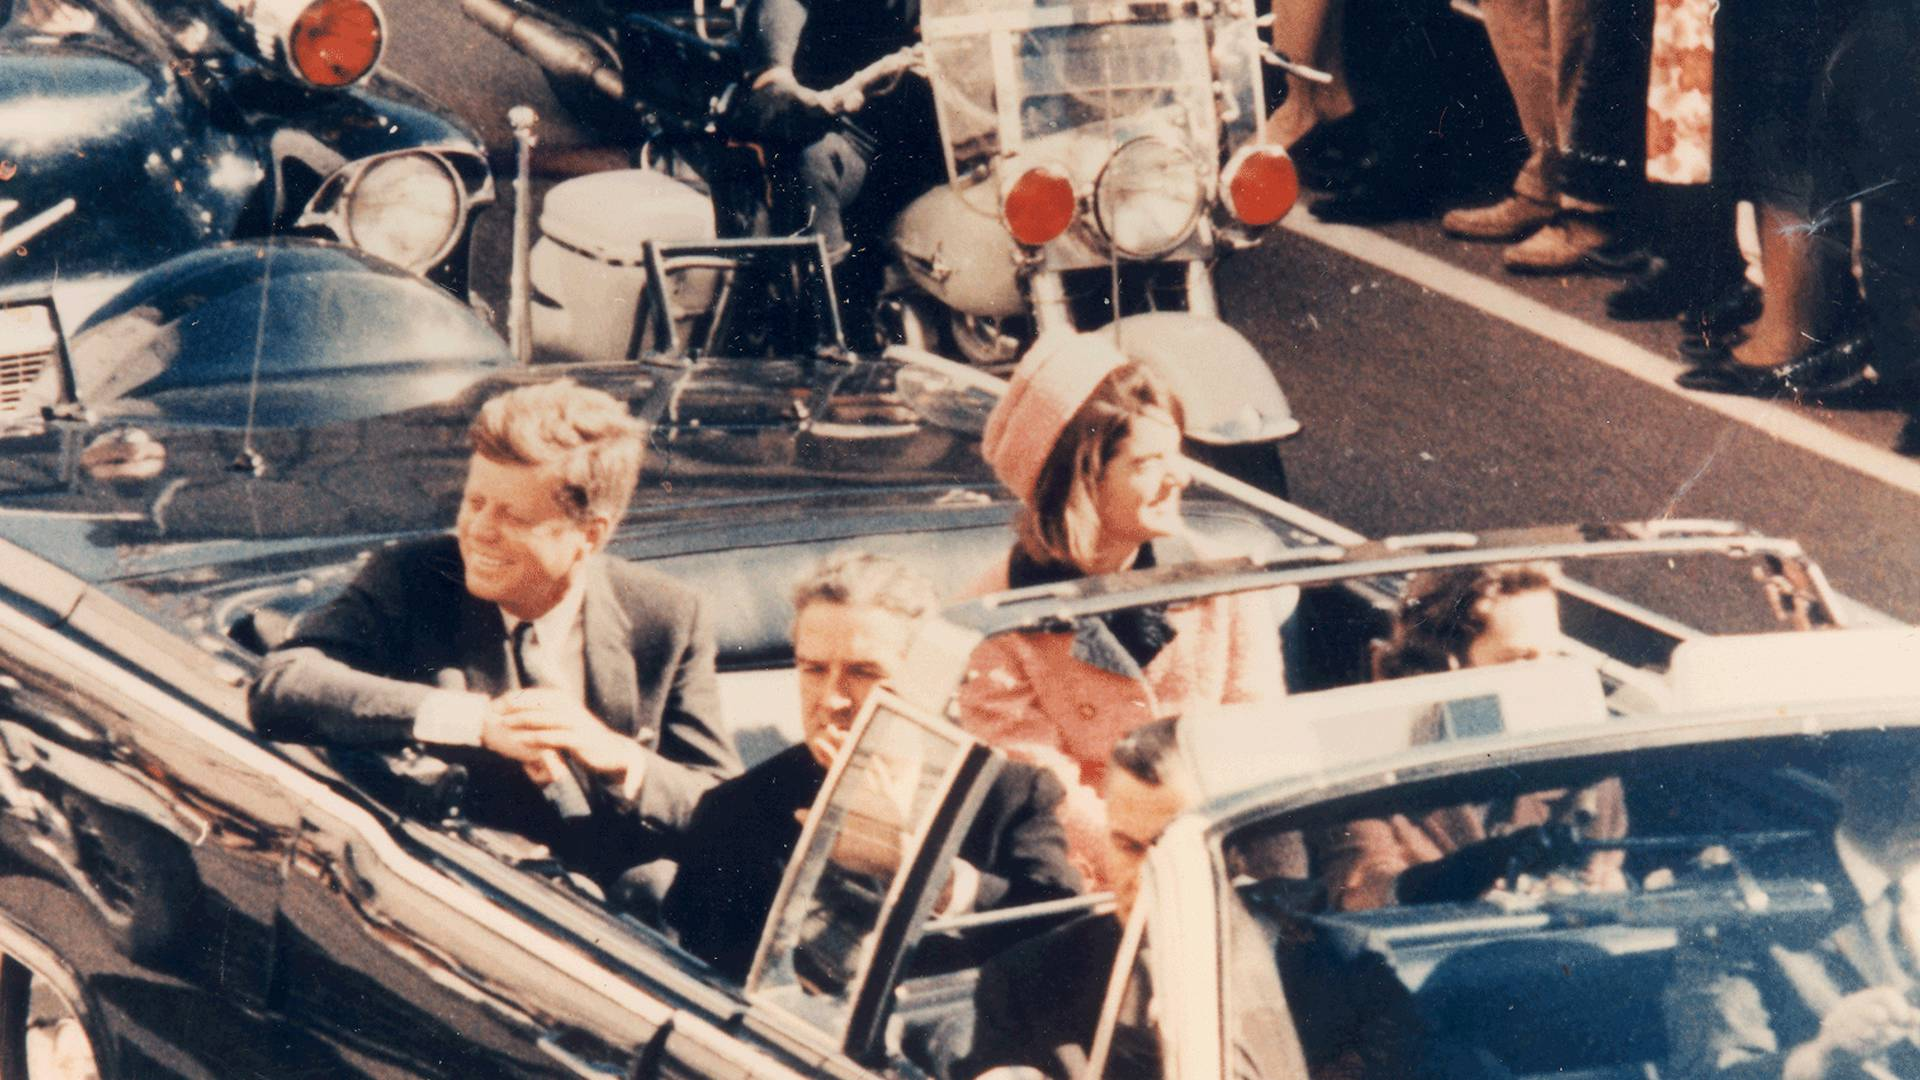 a review of the assassination of president kennedy in 1963 Since president john f kennedy was murdered in dallas in 1963, researchers have laid the blame on everyone from organized crime to shadowy government officials the kennedy assassination explains the various facts and theories surrounding the assassination so that the reader may draw informed conclusions about this.